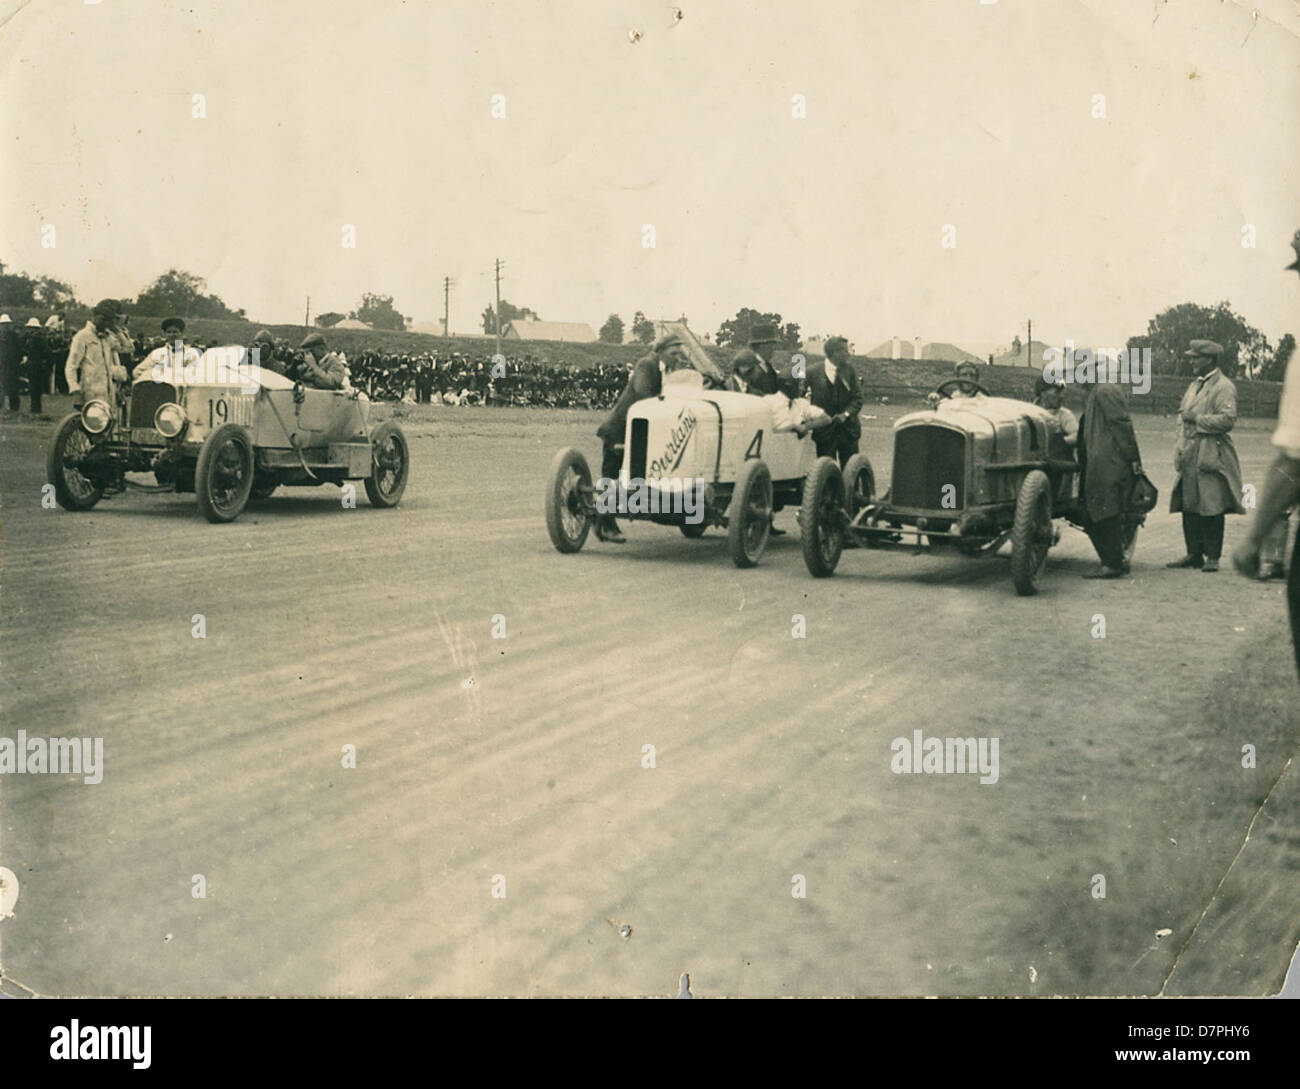 Don Harkness at the wheel of his Overland Sports car 'Whitey' at 10 Mile Championships, 1920 - 1929 - Stock Image